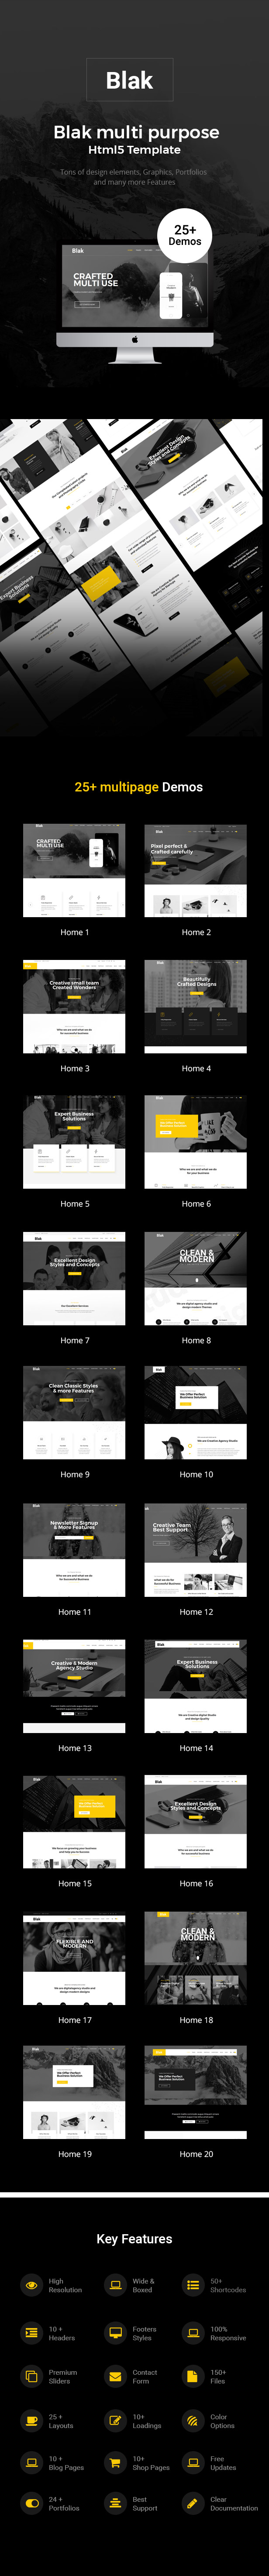 Blak - Responsive Multi-Purpose Drupal 8.7 Theme - 1